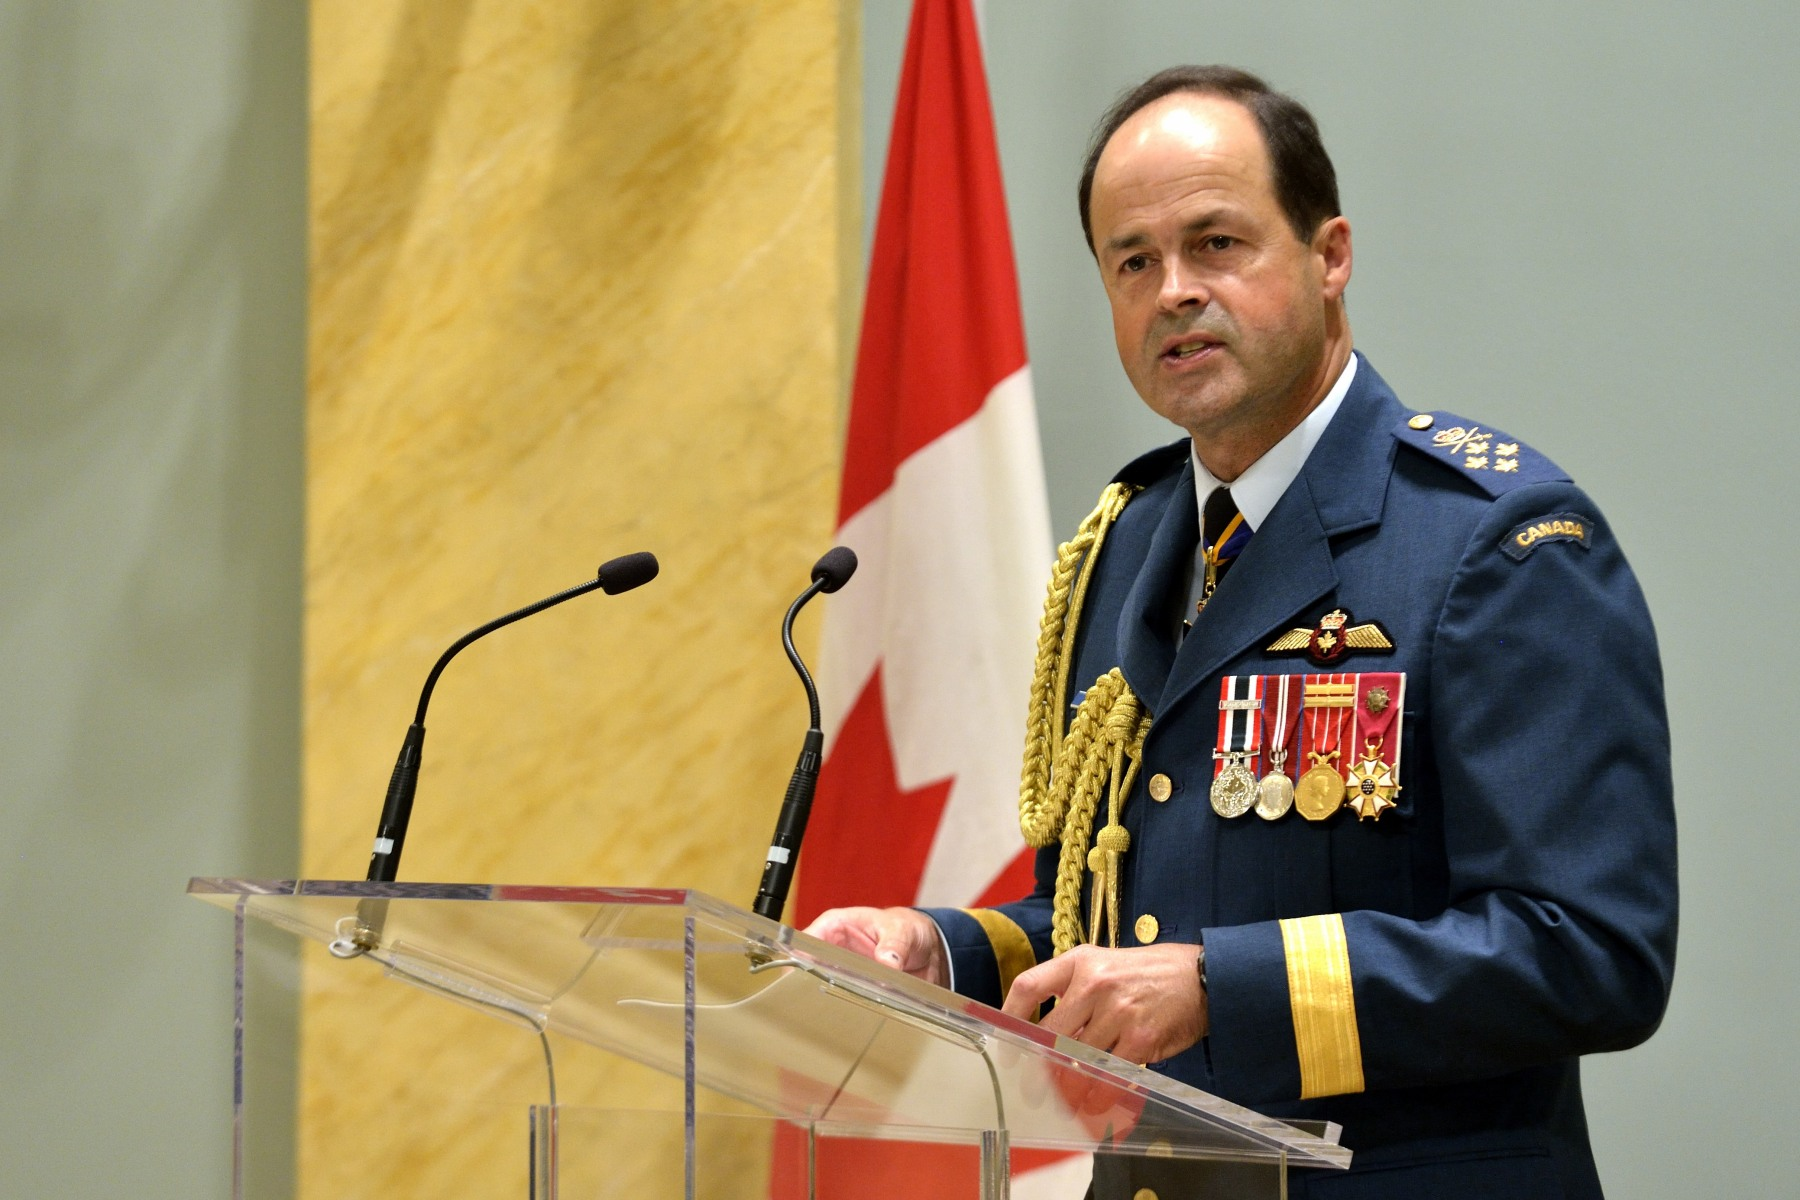 General Thomas Lawson, Chief of the Defence Staff, also spoke during this ceremony.